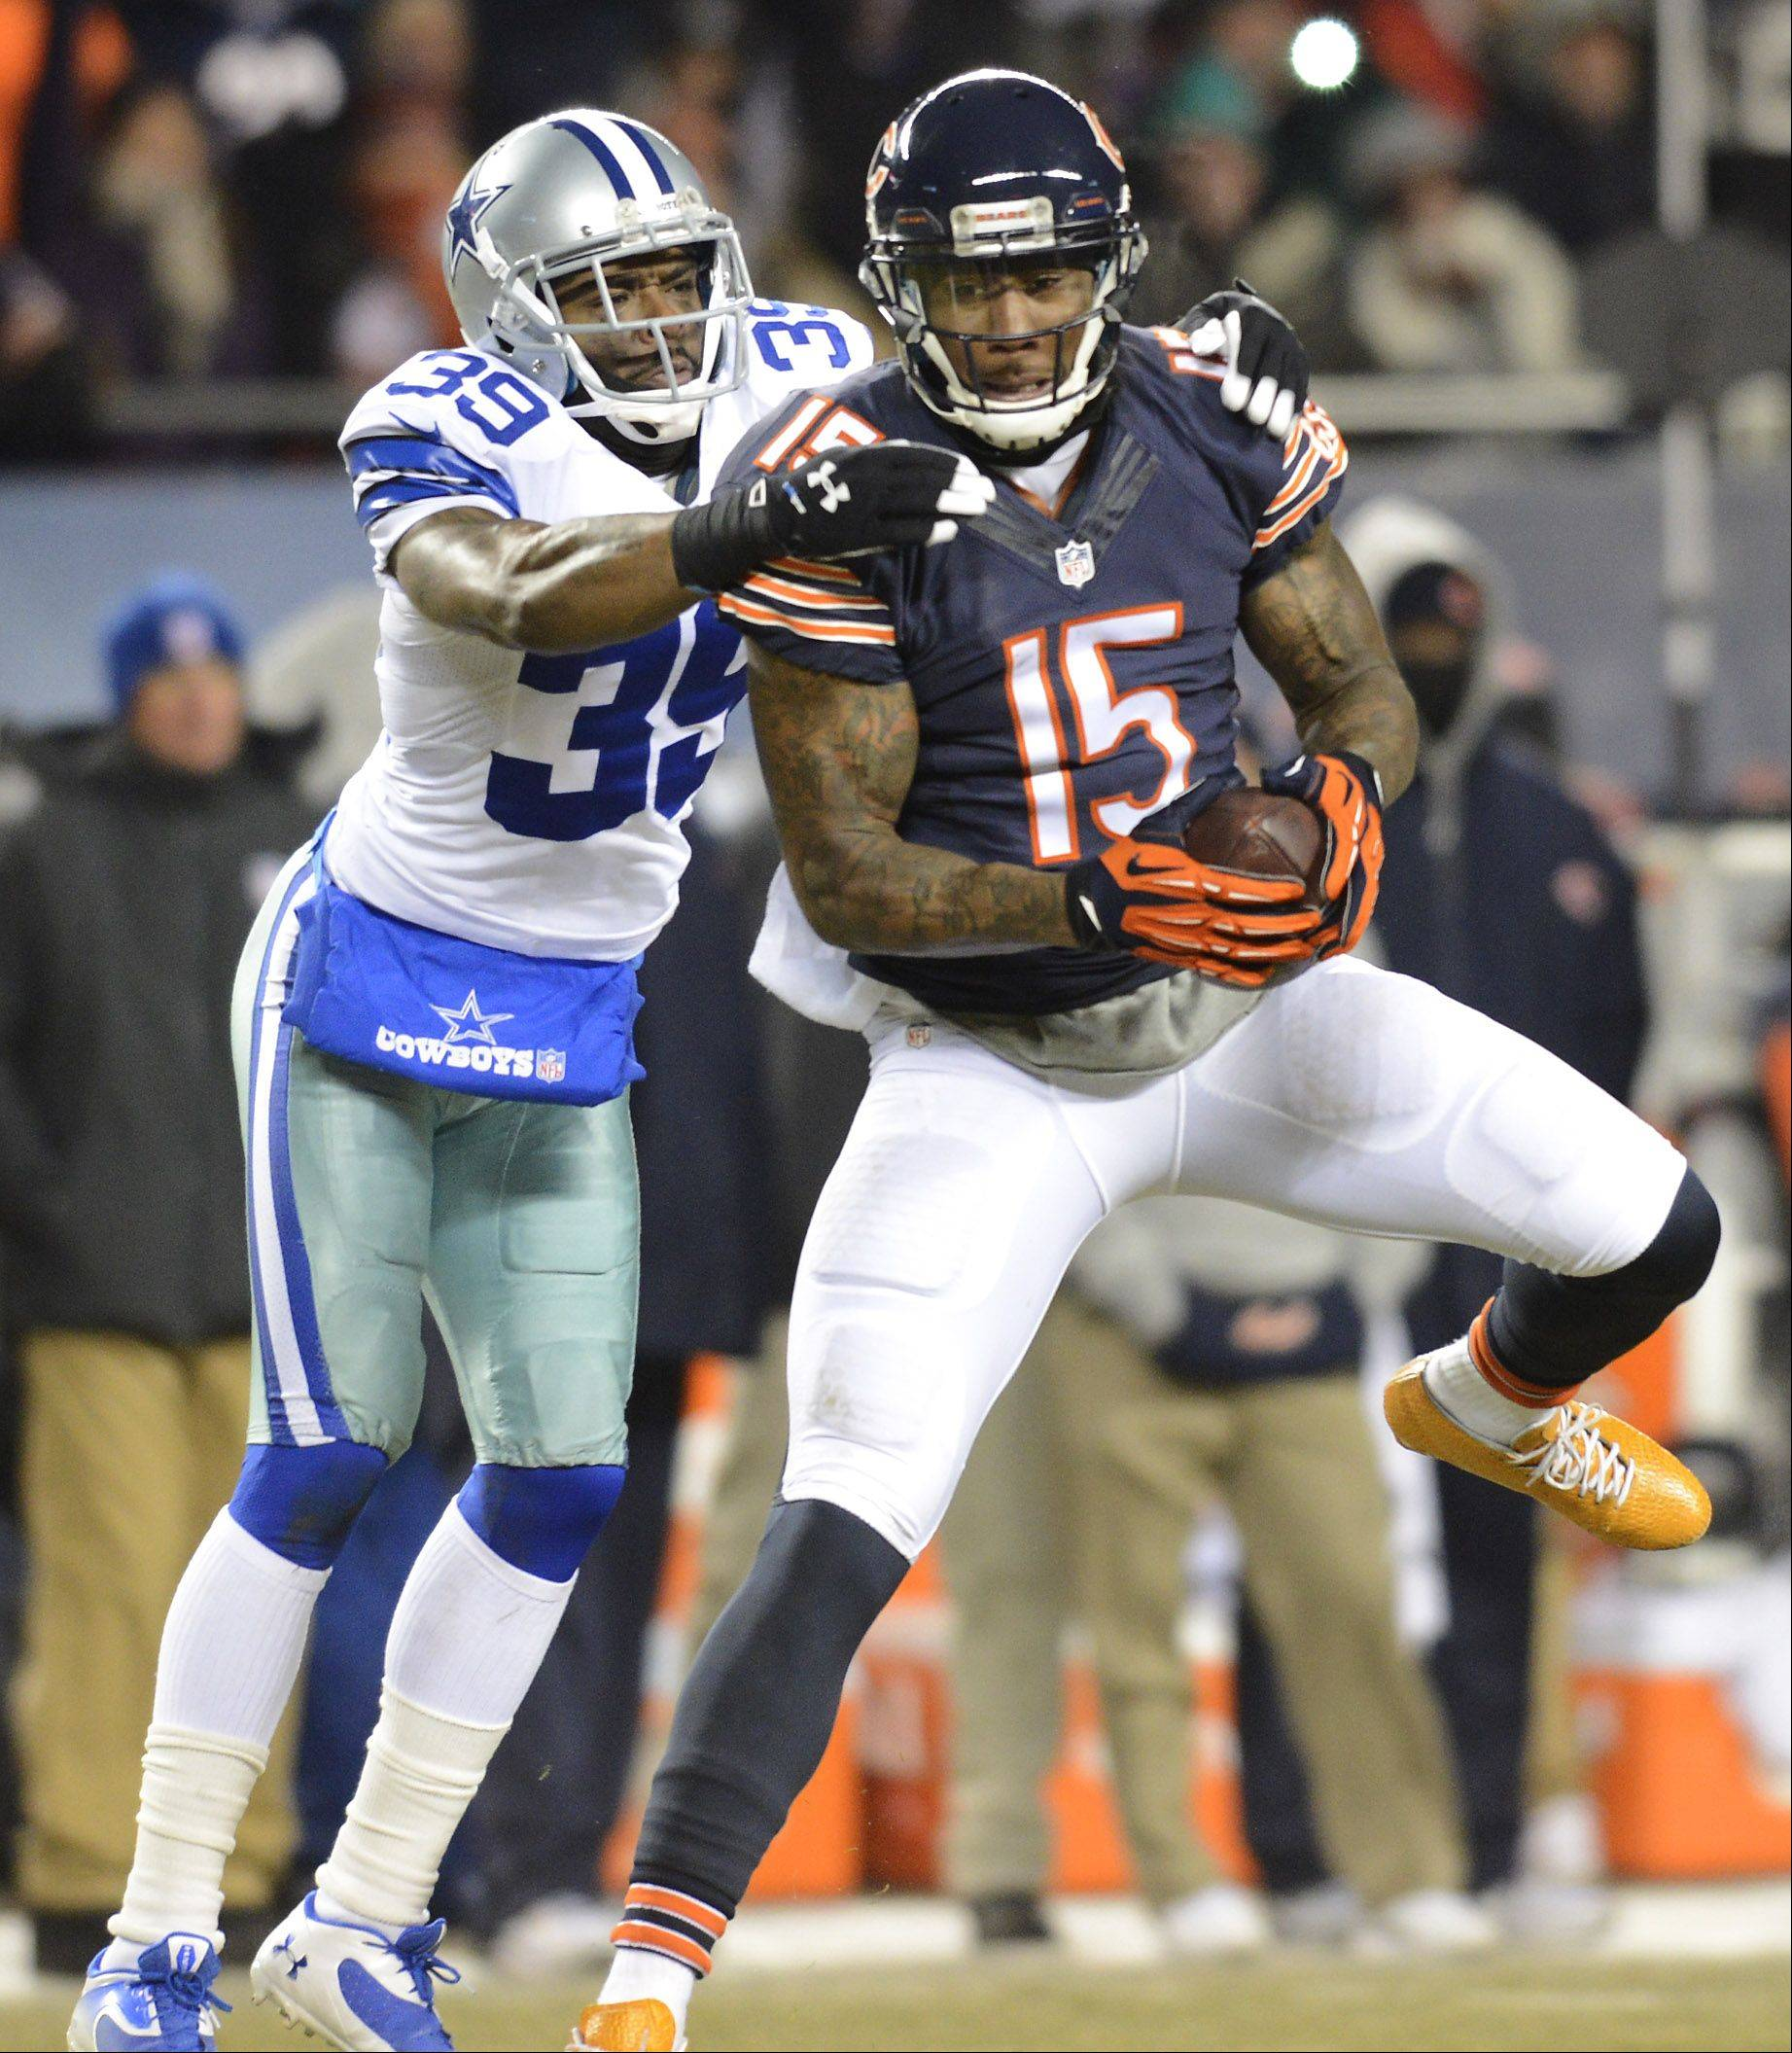 Chicago Bears wide receiver Brandon Marshall makes a catch in front of Dallas Cowboys cornerback Brandon Carr.